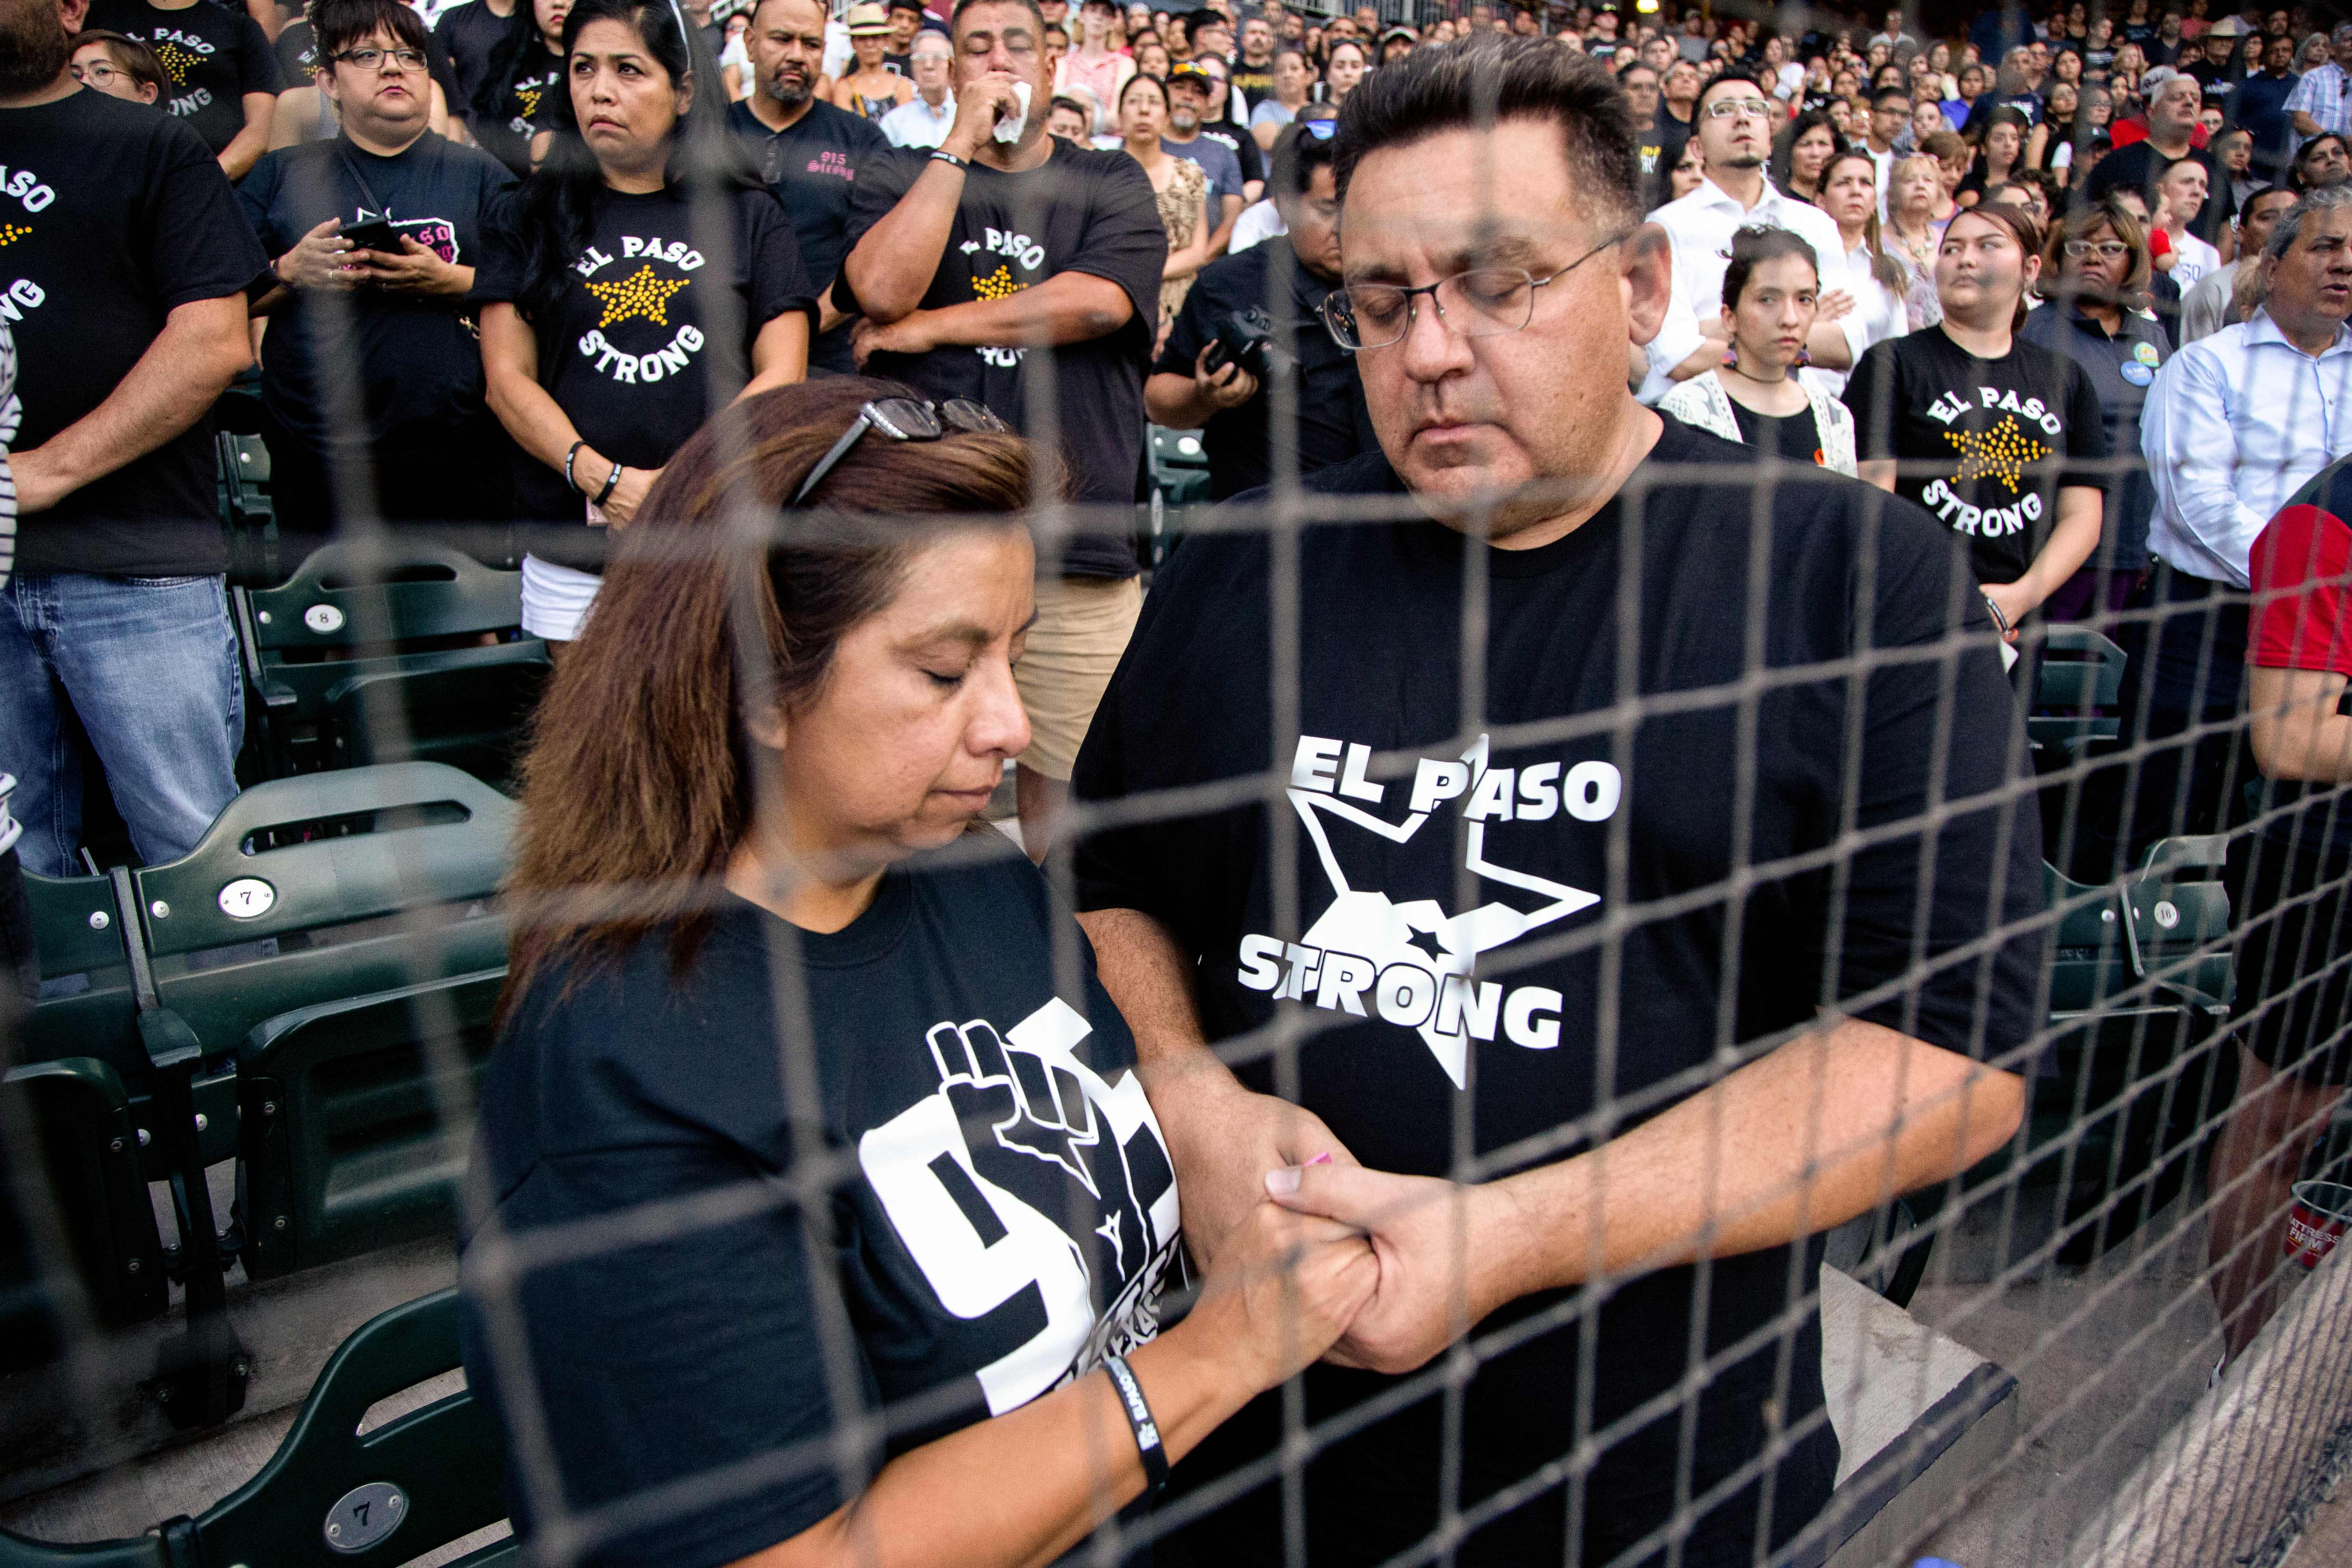 Amor Eterno: How El Paso Is Rebuilding After Tragedy